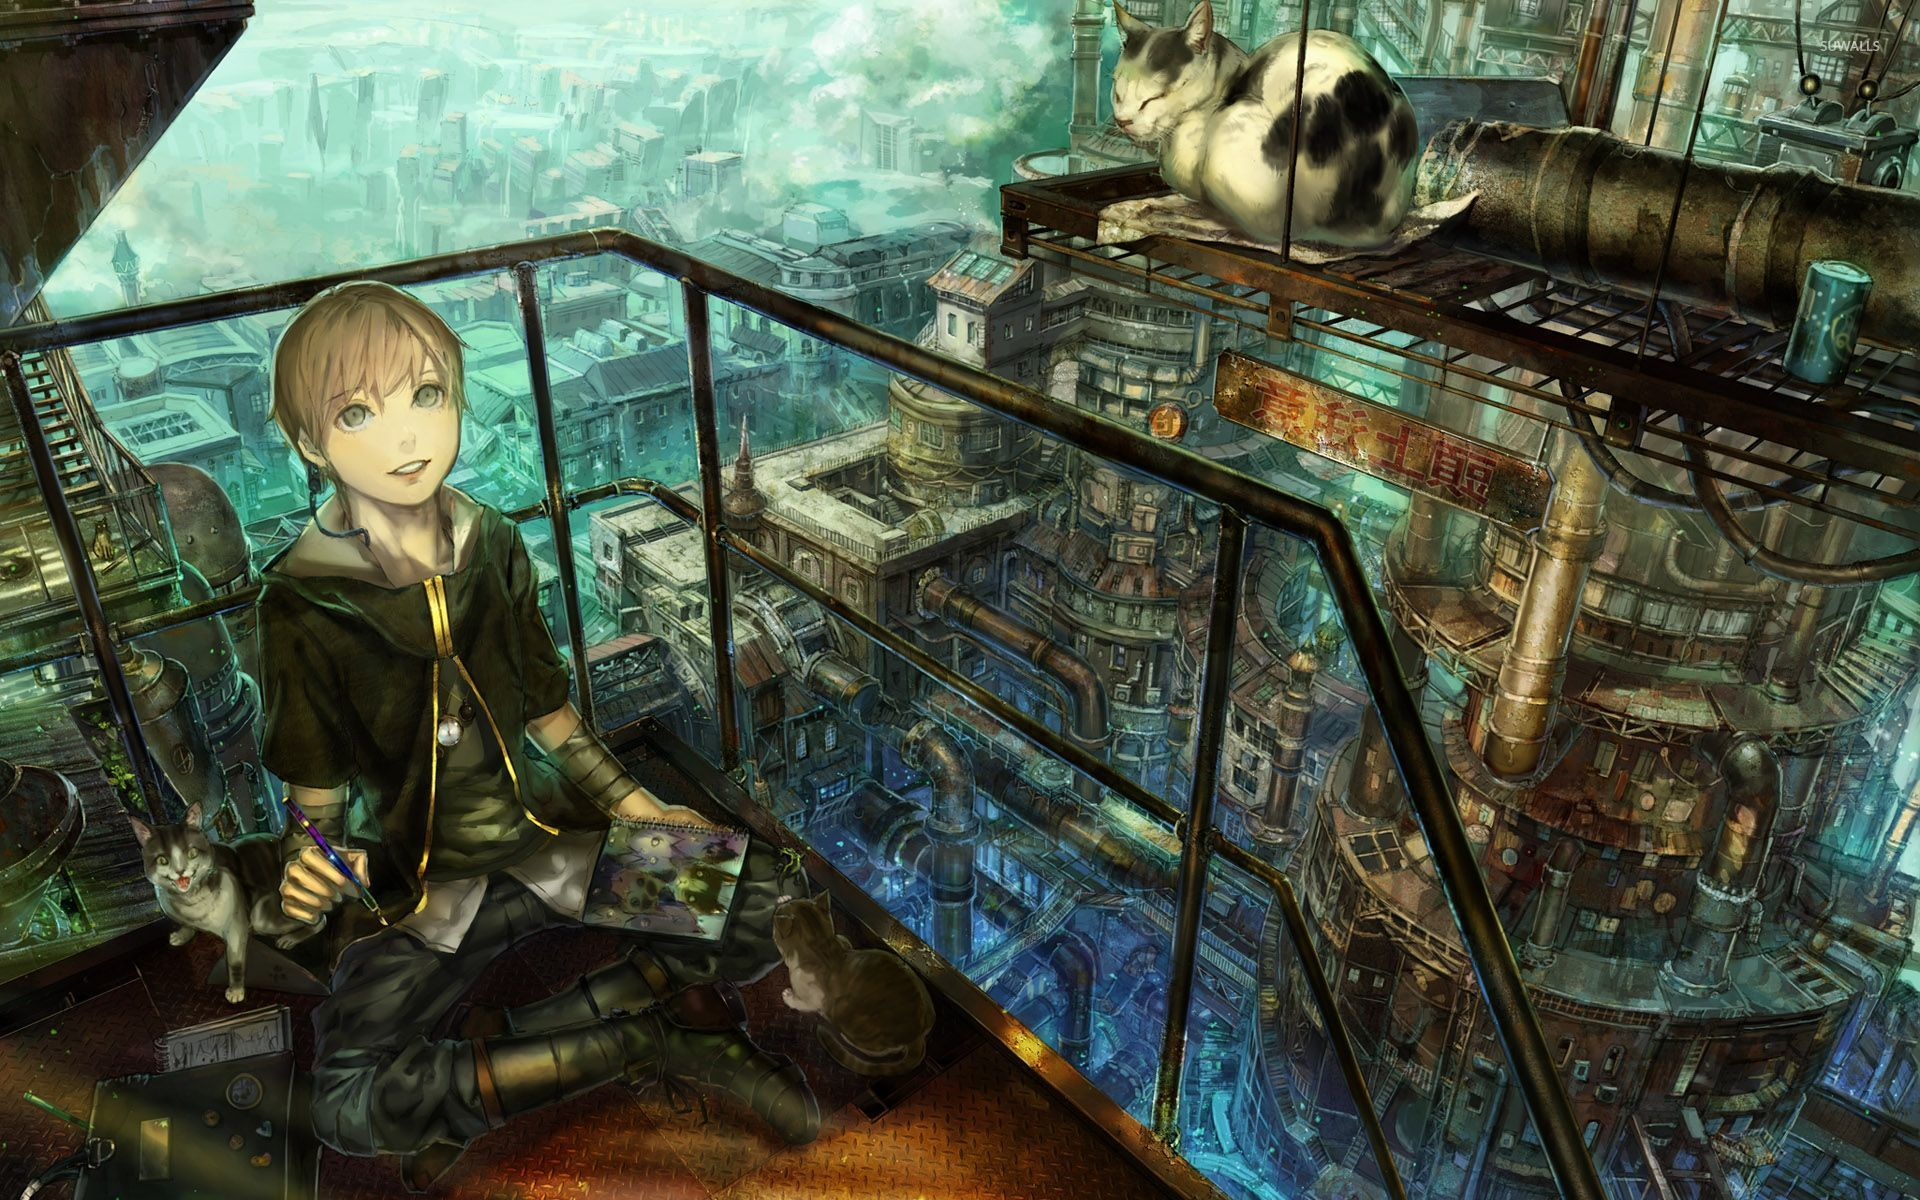 Great Wallpaper Music Steampunk - boy-painting-a-cat-in-the-steampunk-city-30589-1920x1200  Pic_884160.jpg